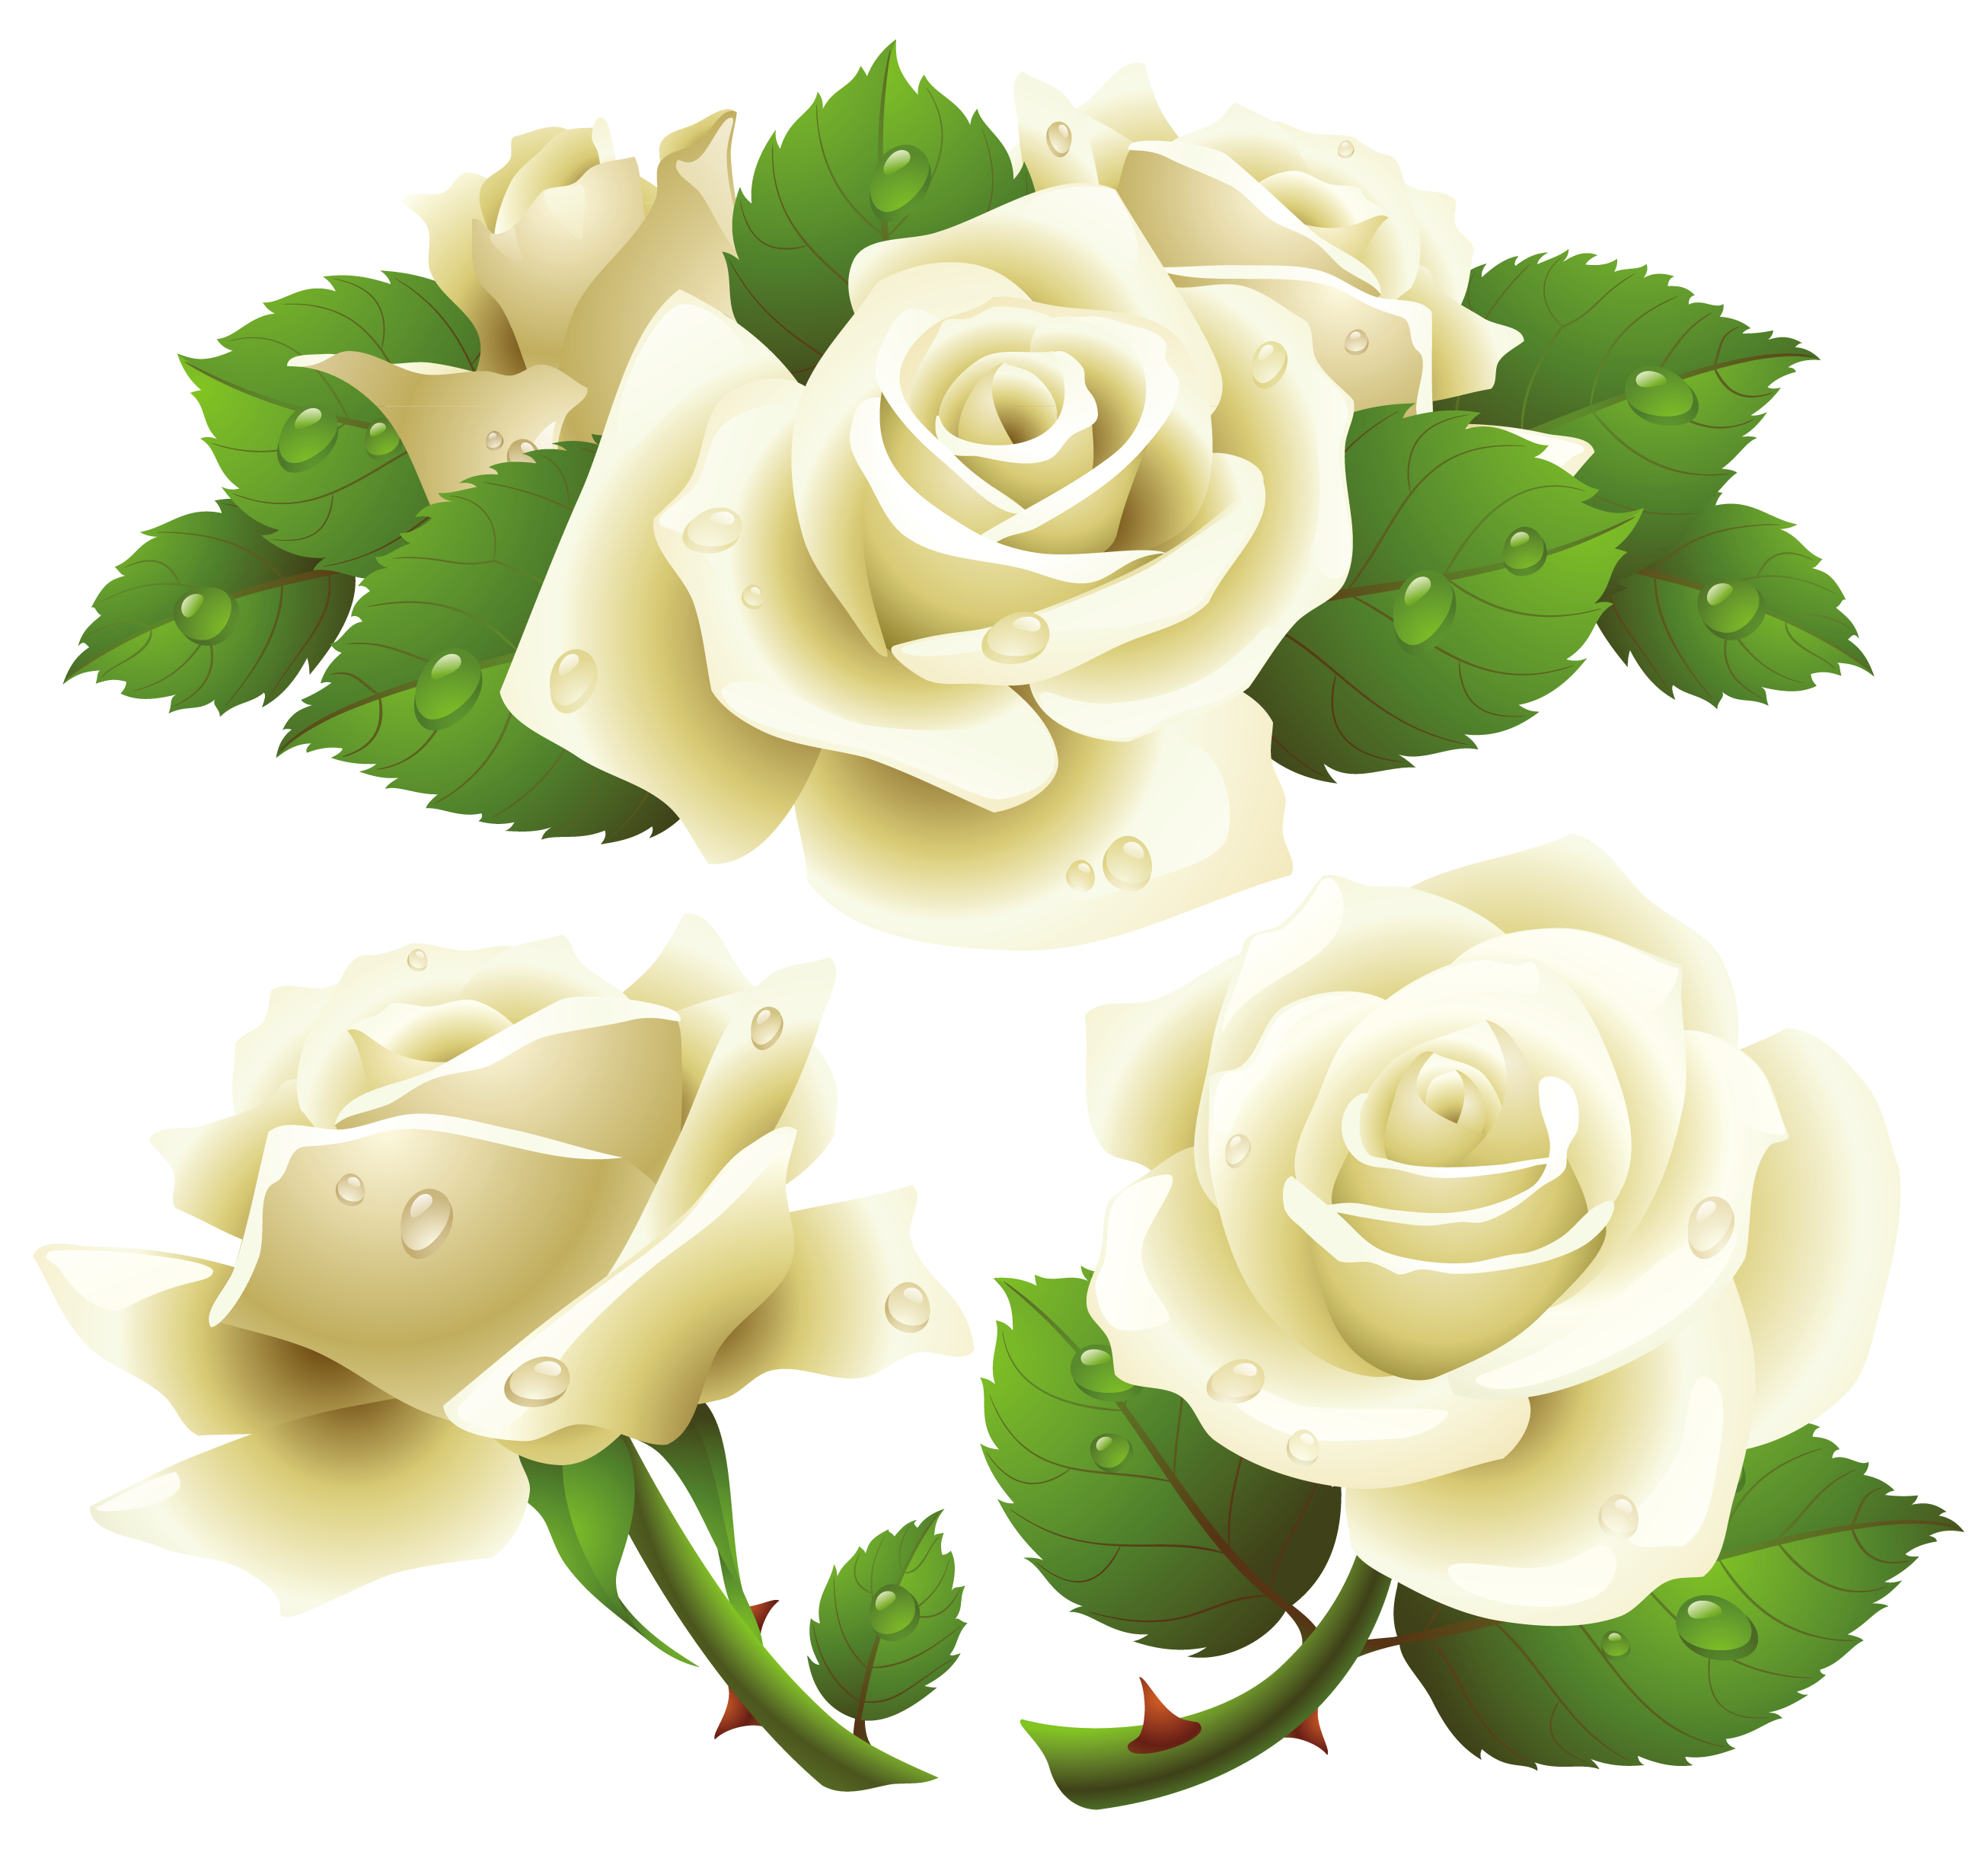 Sun garden friends beer flower plant clipart clip art freeuse library White Rose Twenty-two | Isolated Stock Photo by noBACKS.com clip art freeuse library